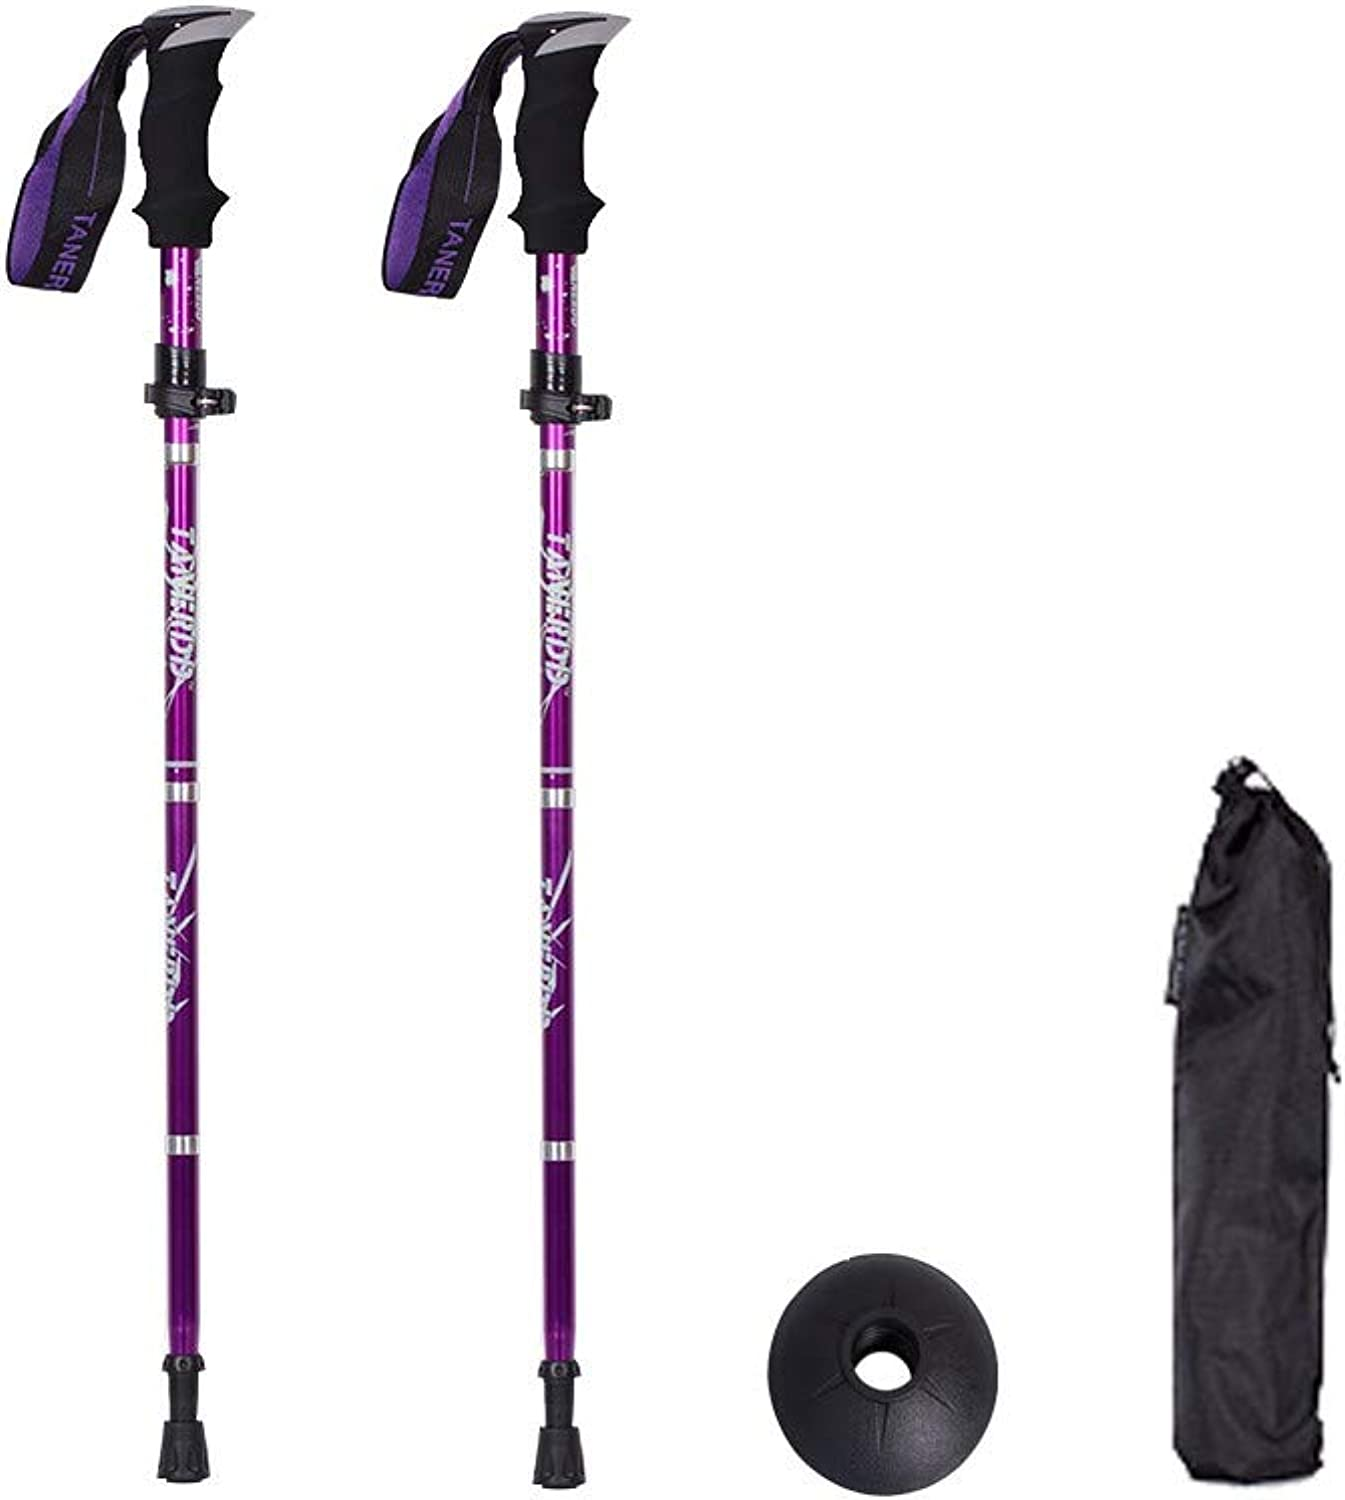 Hiking Poles Trekking Pole 2 Packs of Height Adjustable Crutches Folding Trekking Poles Portable Straight Handle Crutches Ultralight Hiking Camping Backpack Walking